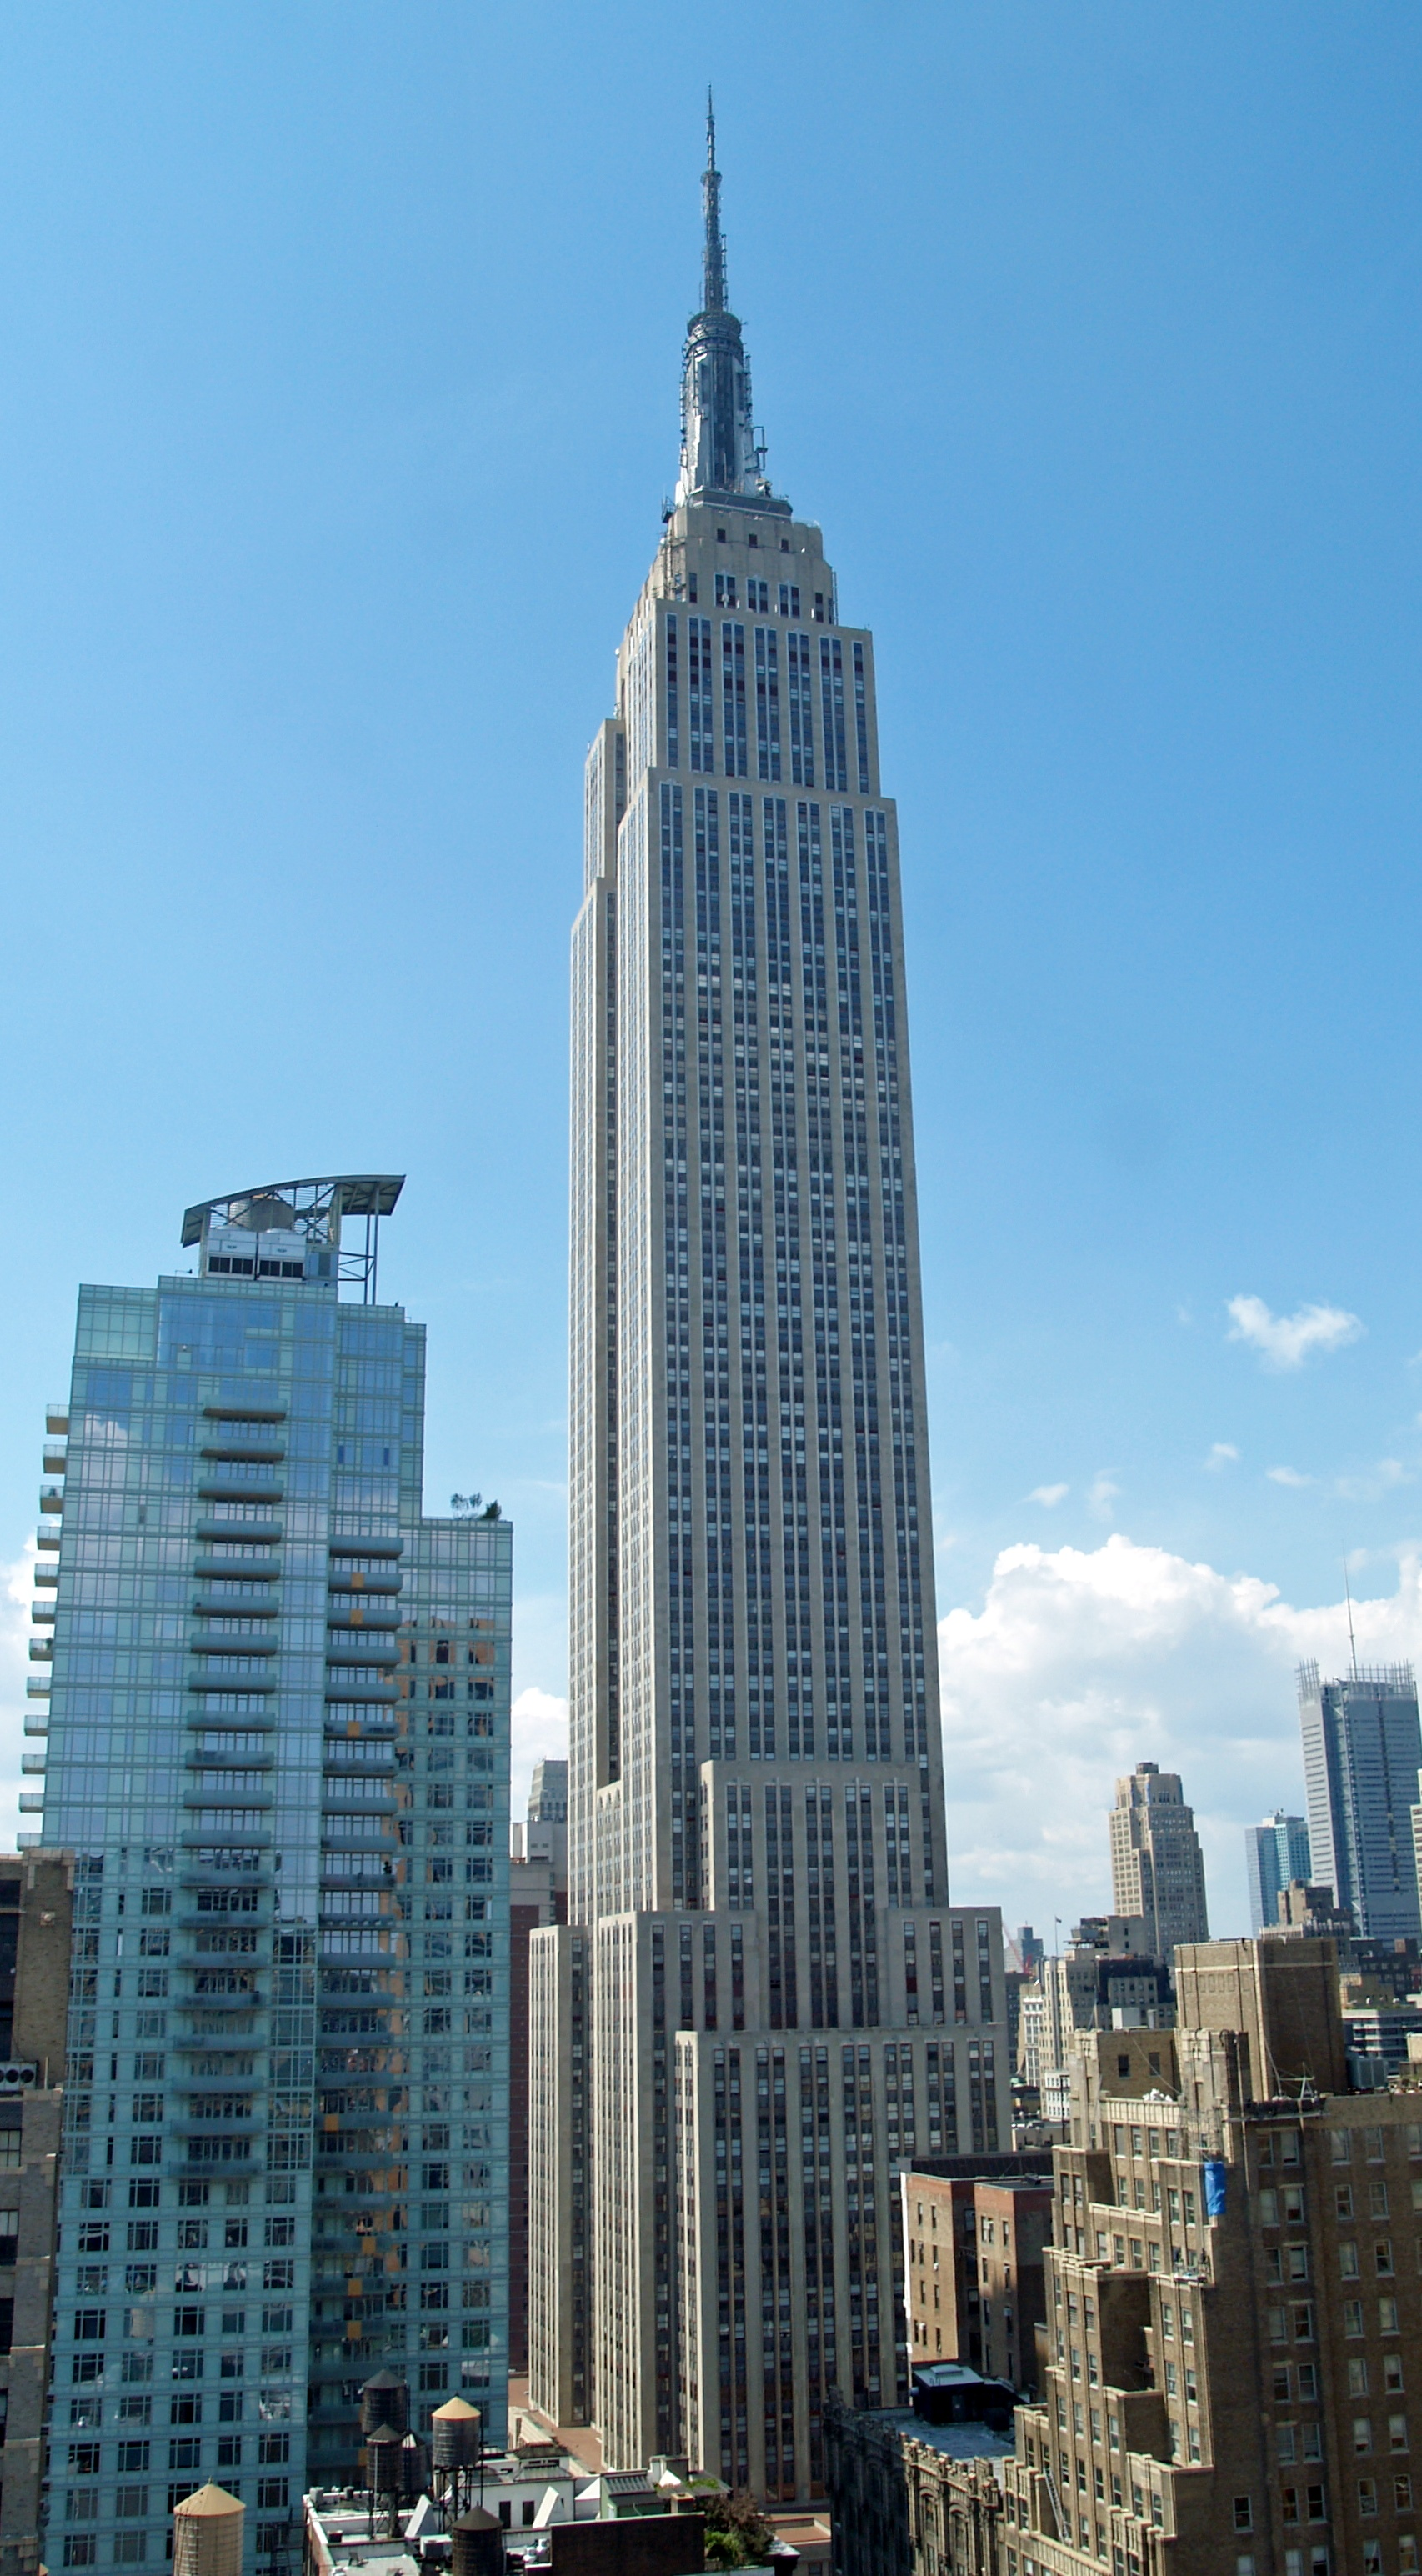 Appart Hotel Roses Espagne Empire State Building New York | Arts Et Voyages